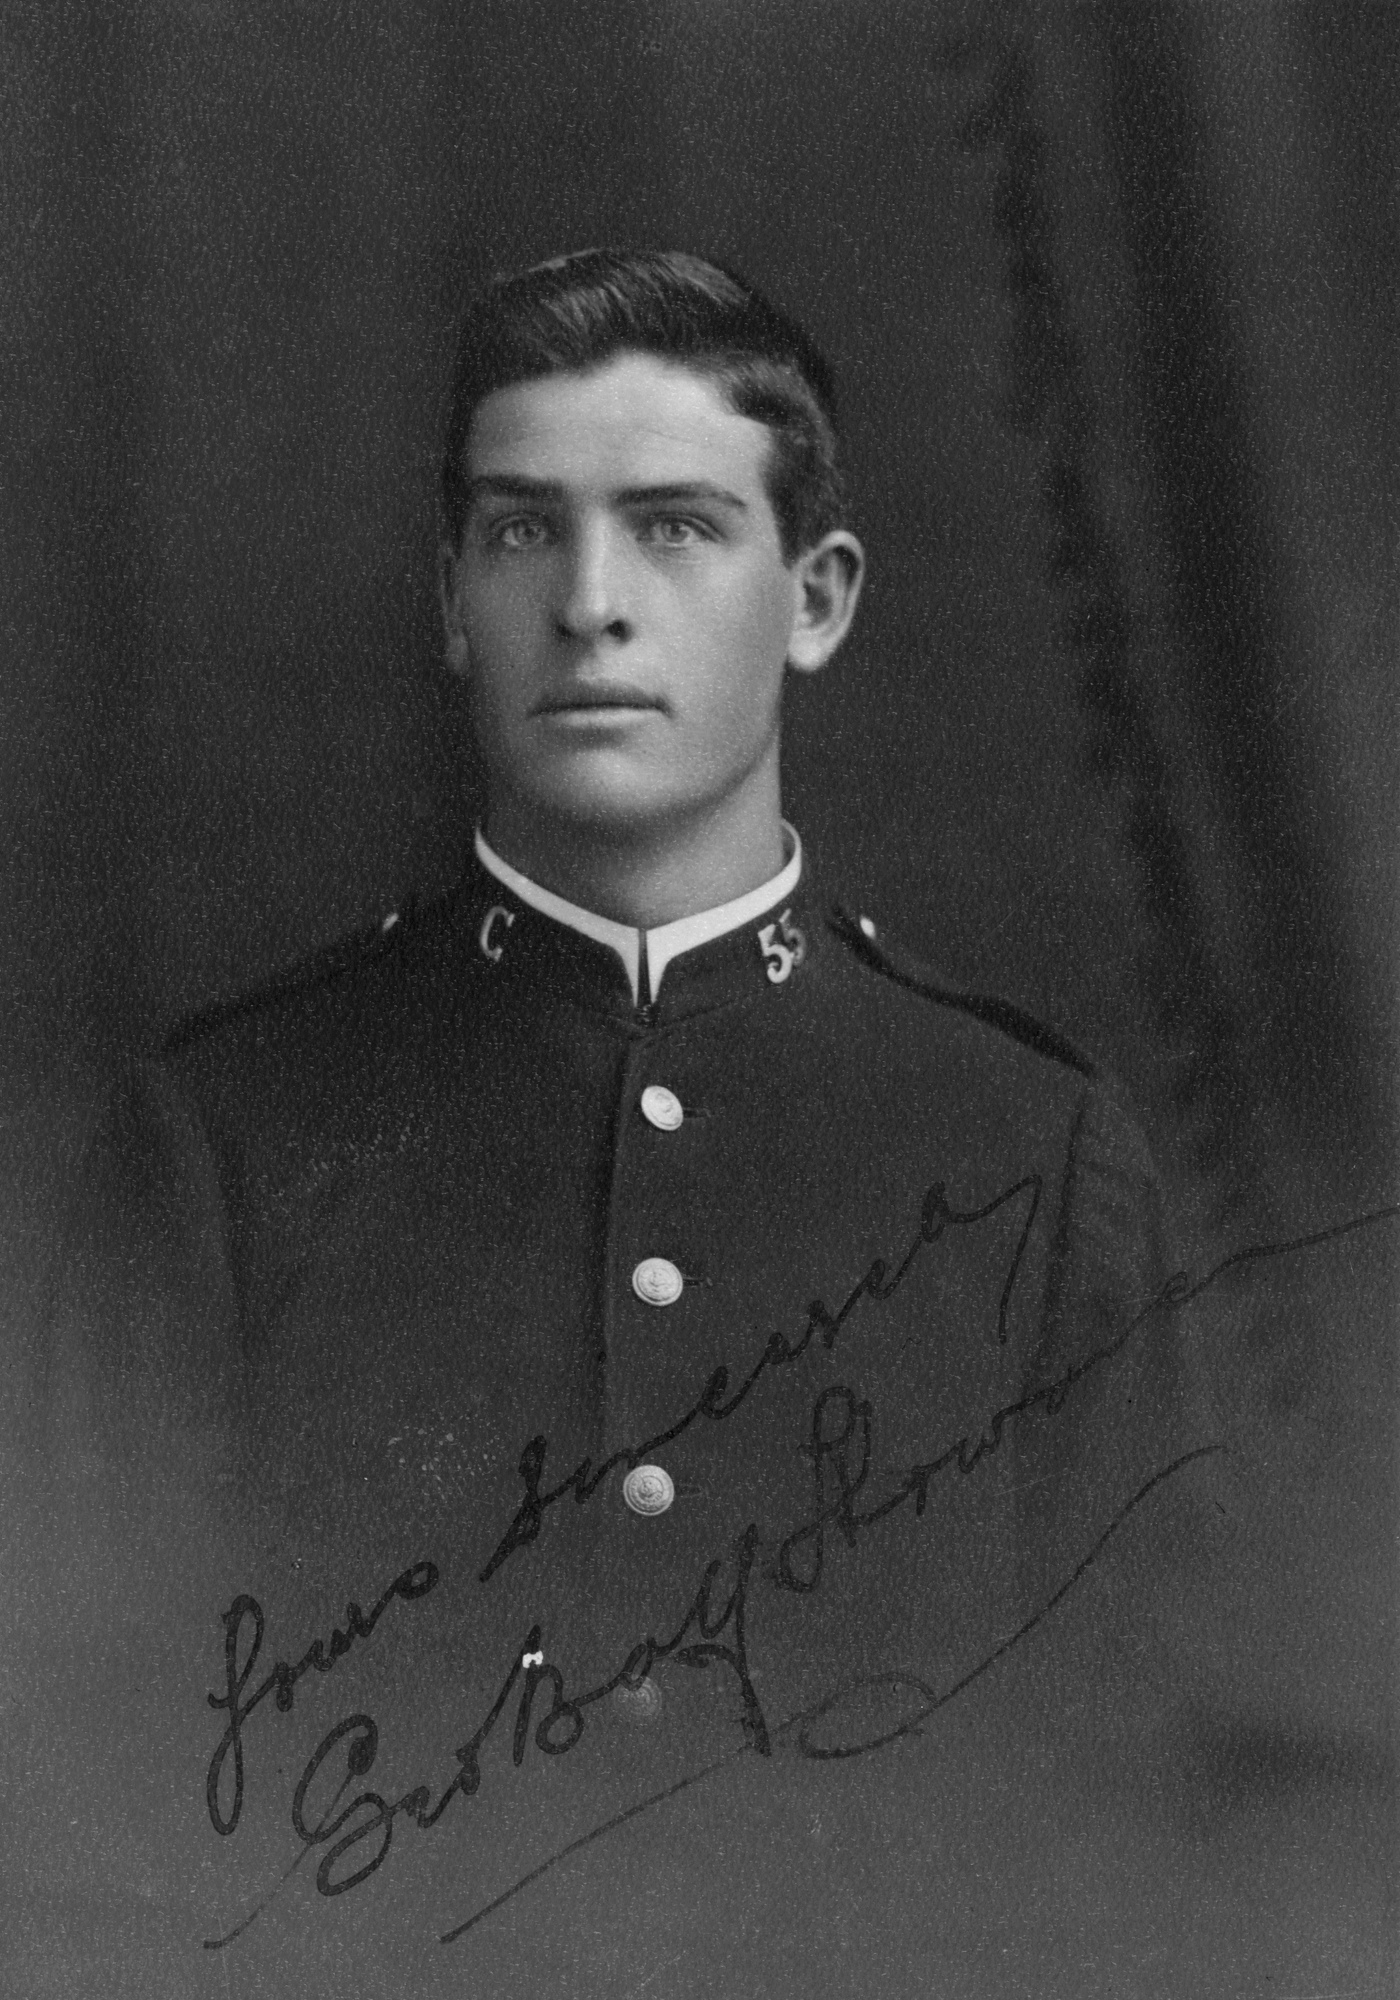 Black and white portrait of young man in uniform.